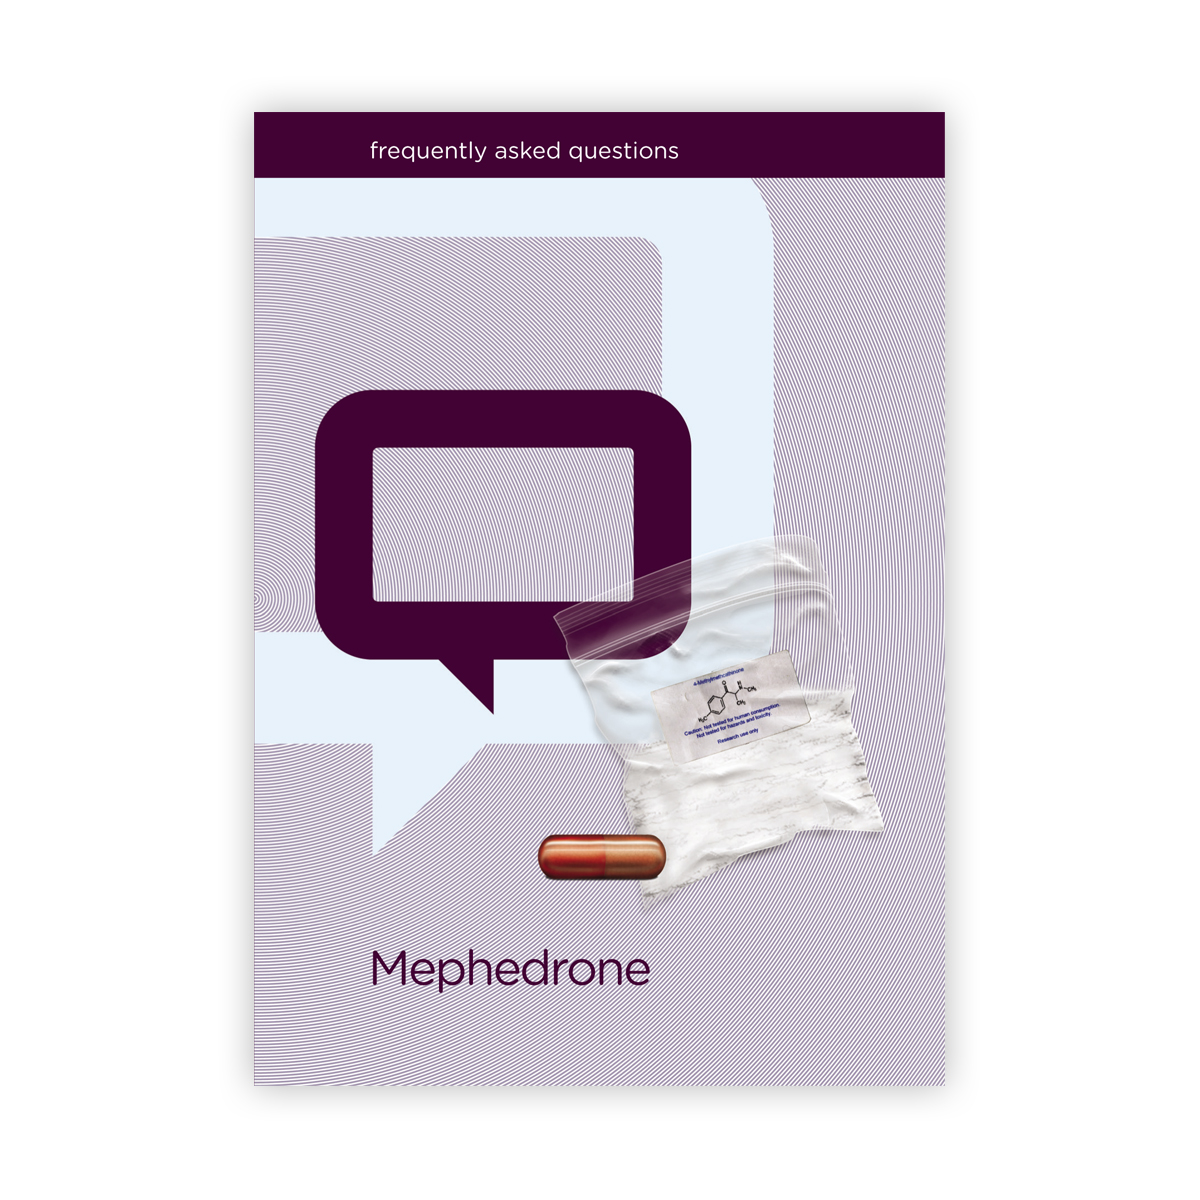 Mephedrone FAQs